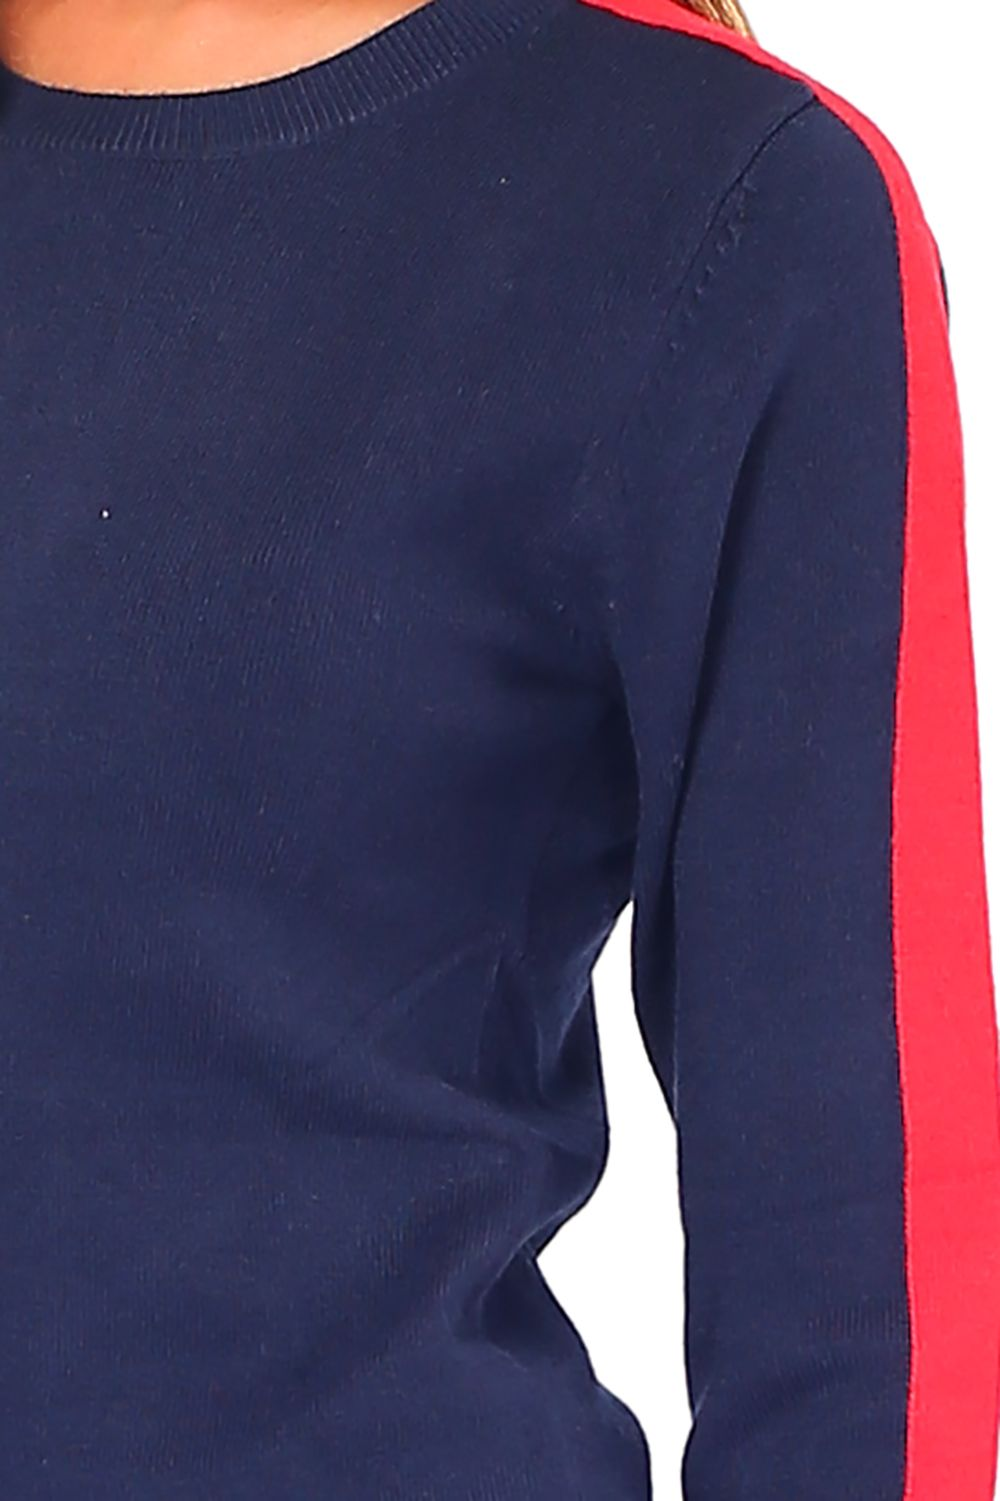 William De Faye Round Neck Sweater with Two-tone Sleeves in Navy